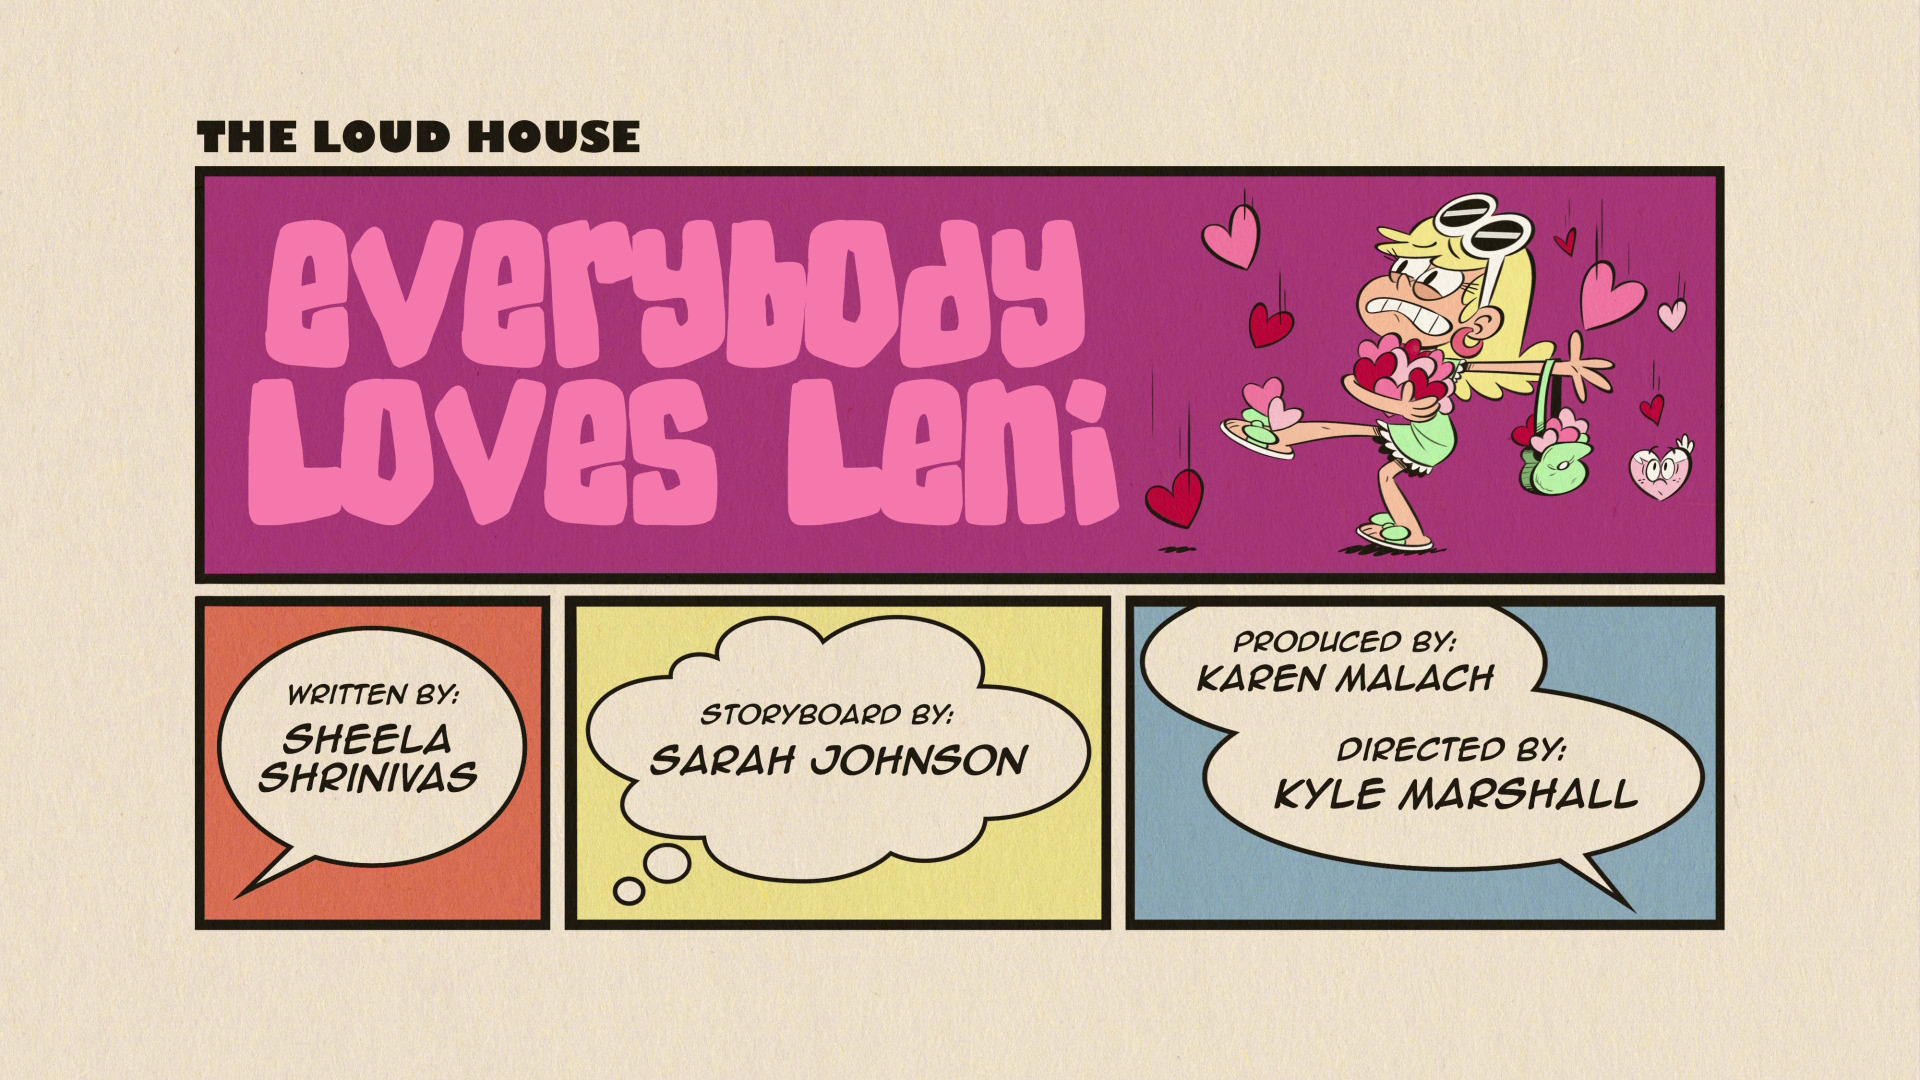 the loud house patching things up script